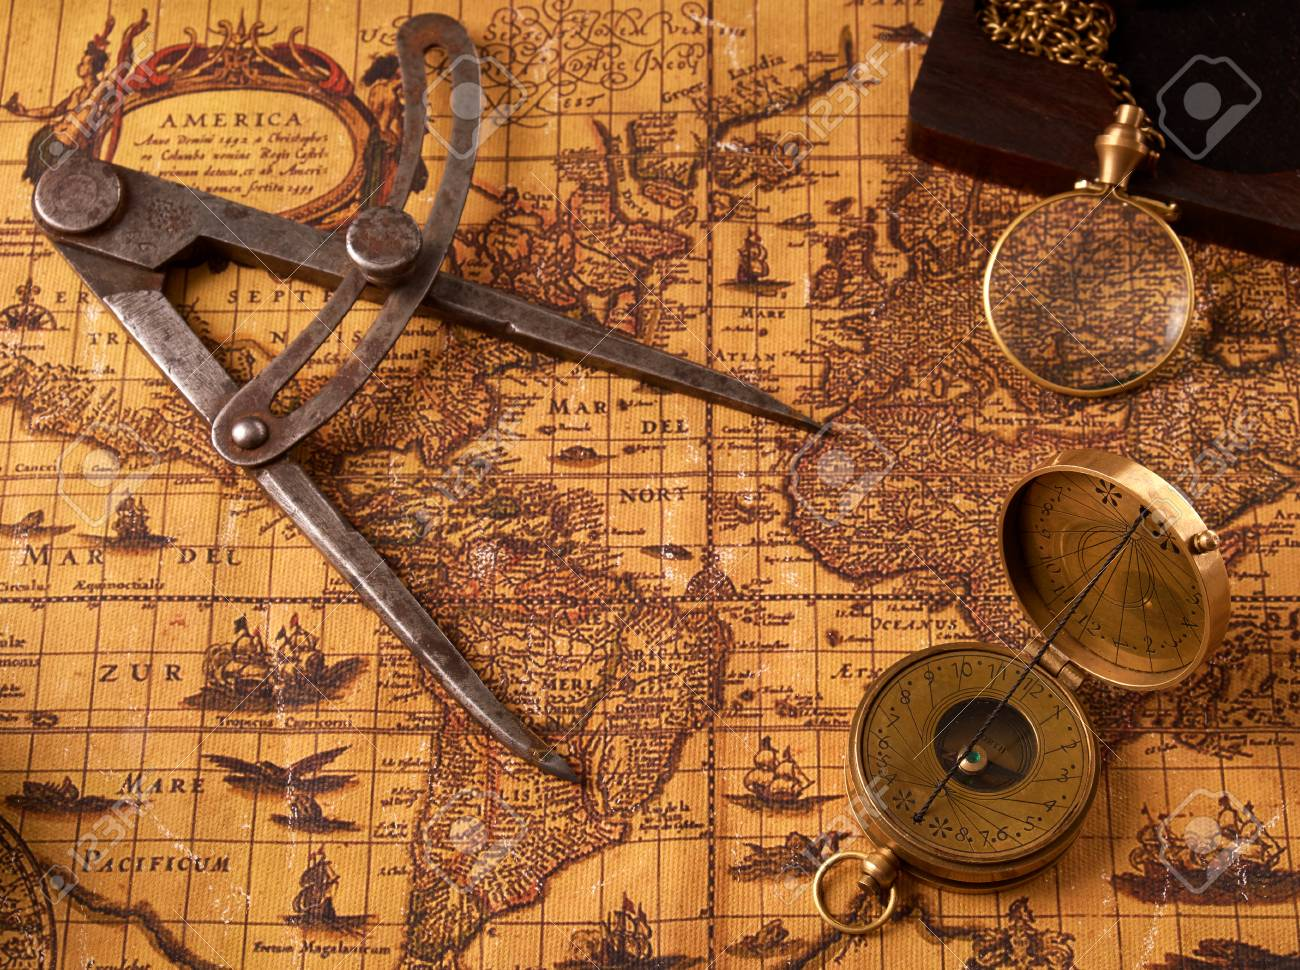 Old vintage retro compass on ancient world map vintage still life old vintage retro compass on ancient world map vintage still life travel geography navigation gumiabroncs Image collections